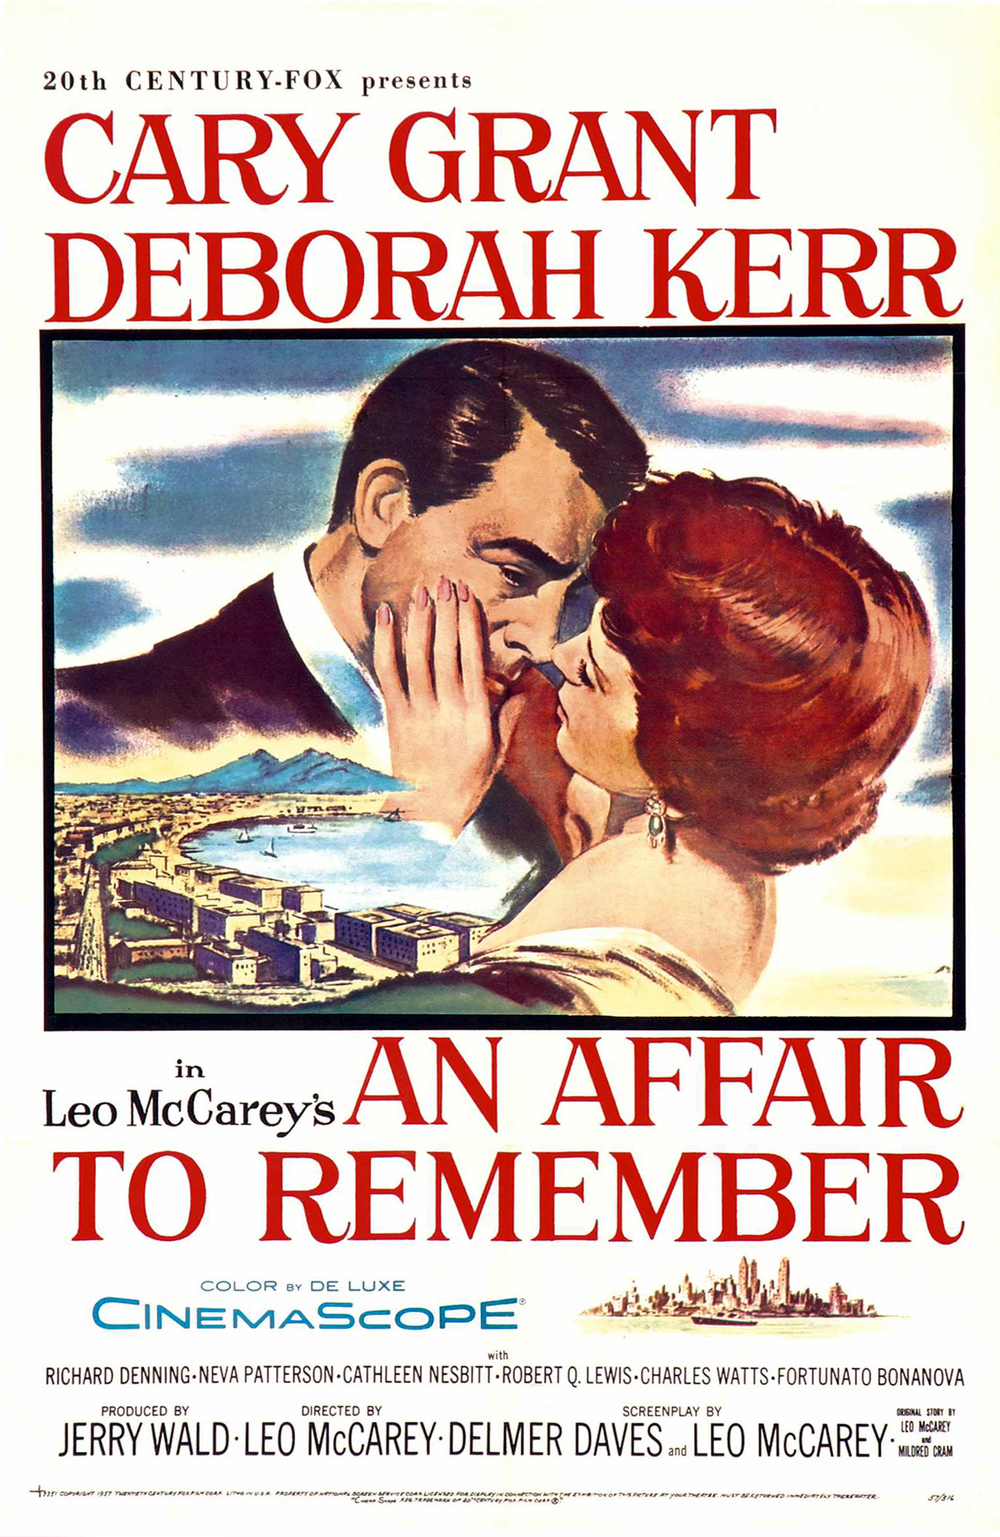 Movie-Poster-an-affair-to-remember-14440491-1301-2000.jpg